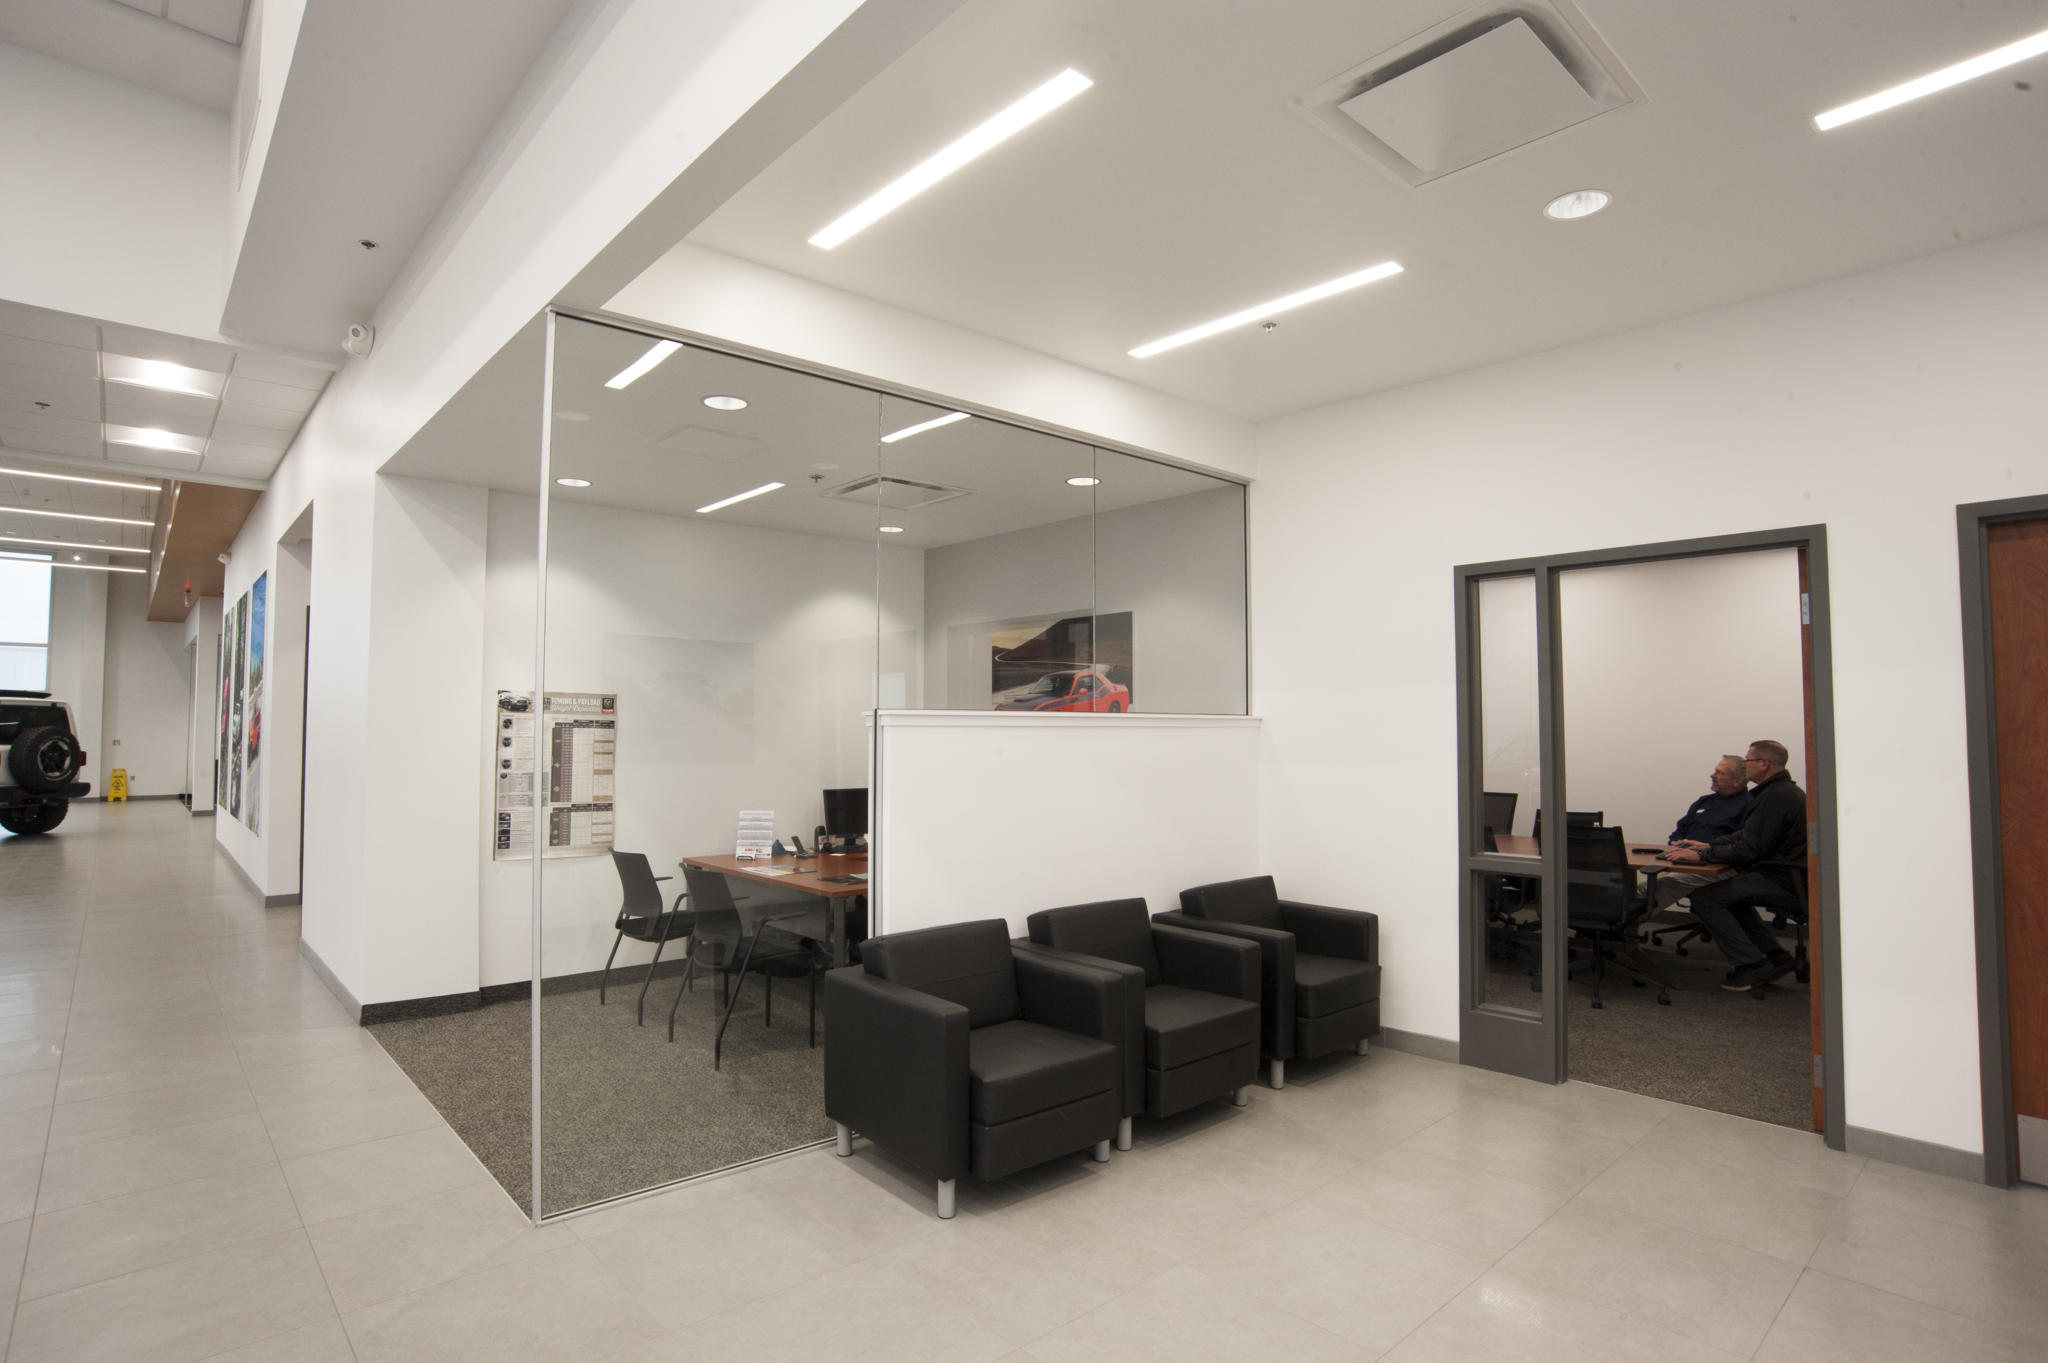 image of office space at car dealership